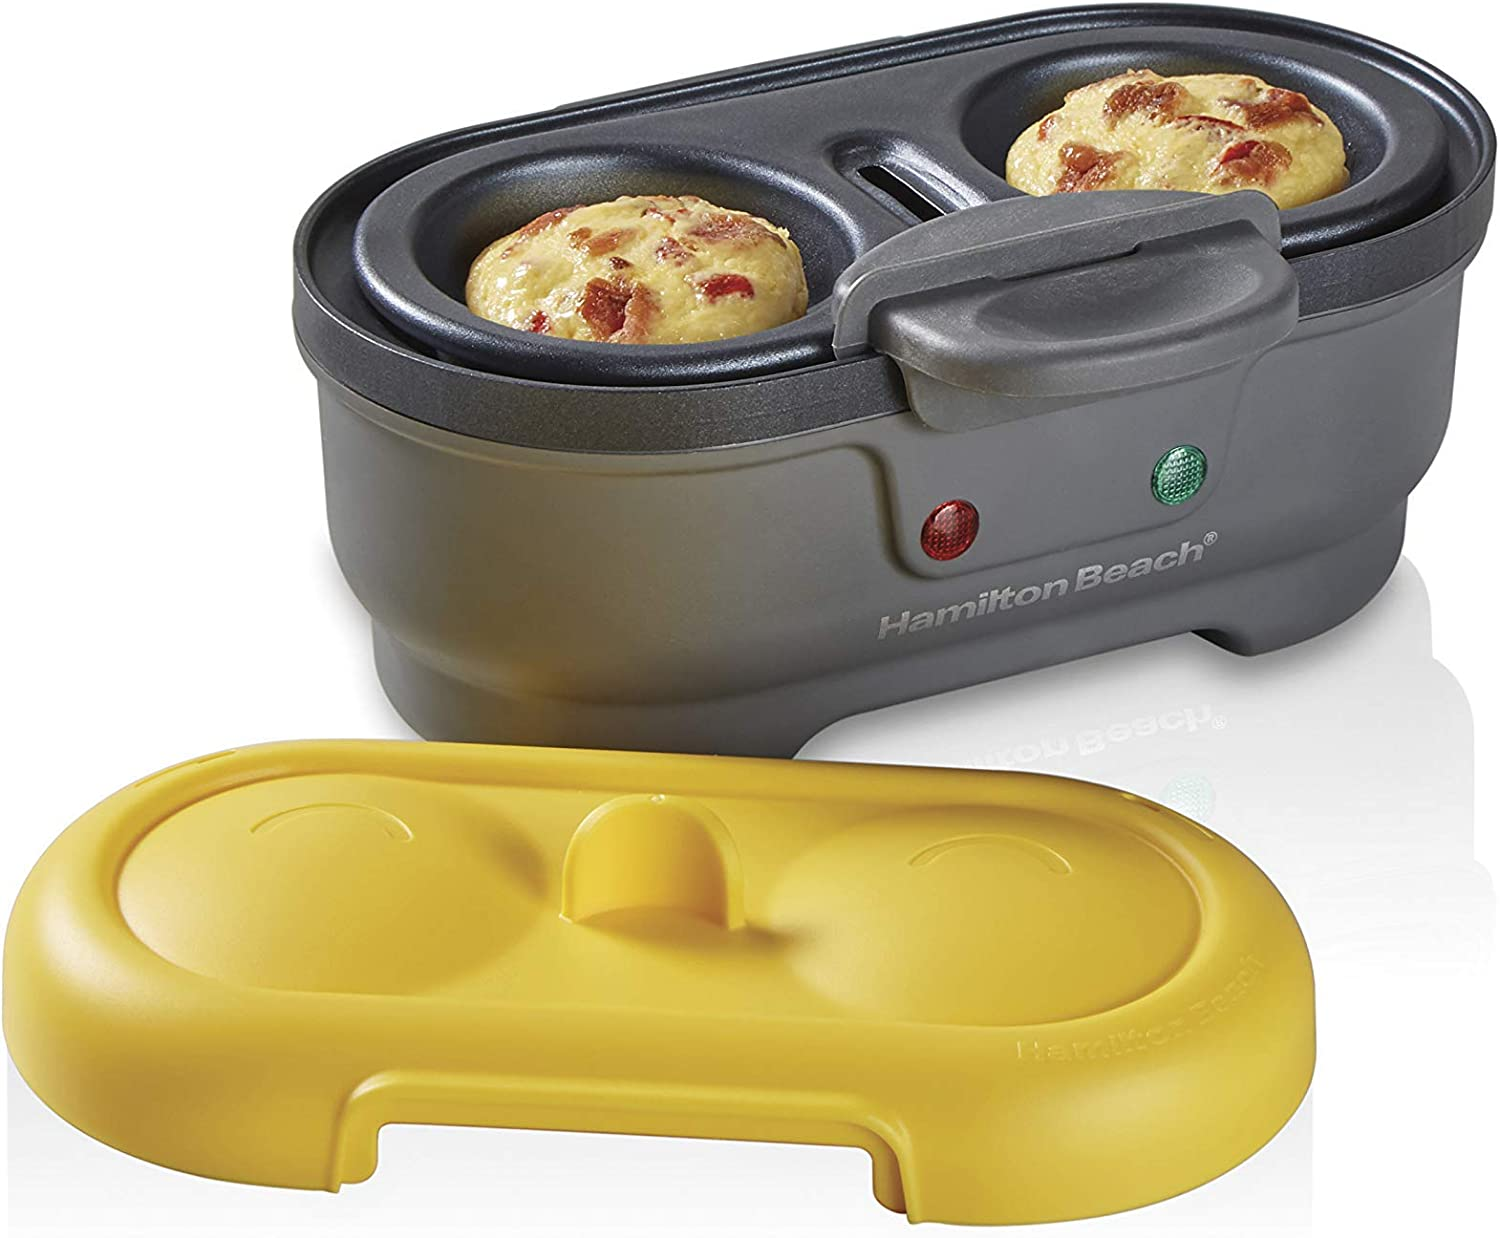 Hamilton Beach Electric Egg Bites Cooker & Poacher, Removable Nonstick Tray Makes 2 in Under 10 Minutes, Yellow (25505) (Renewed)